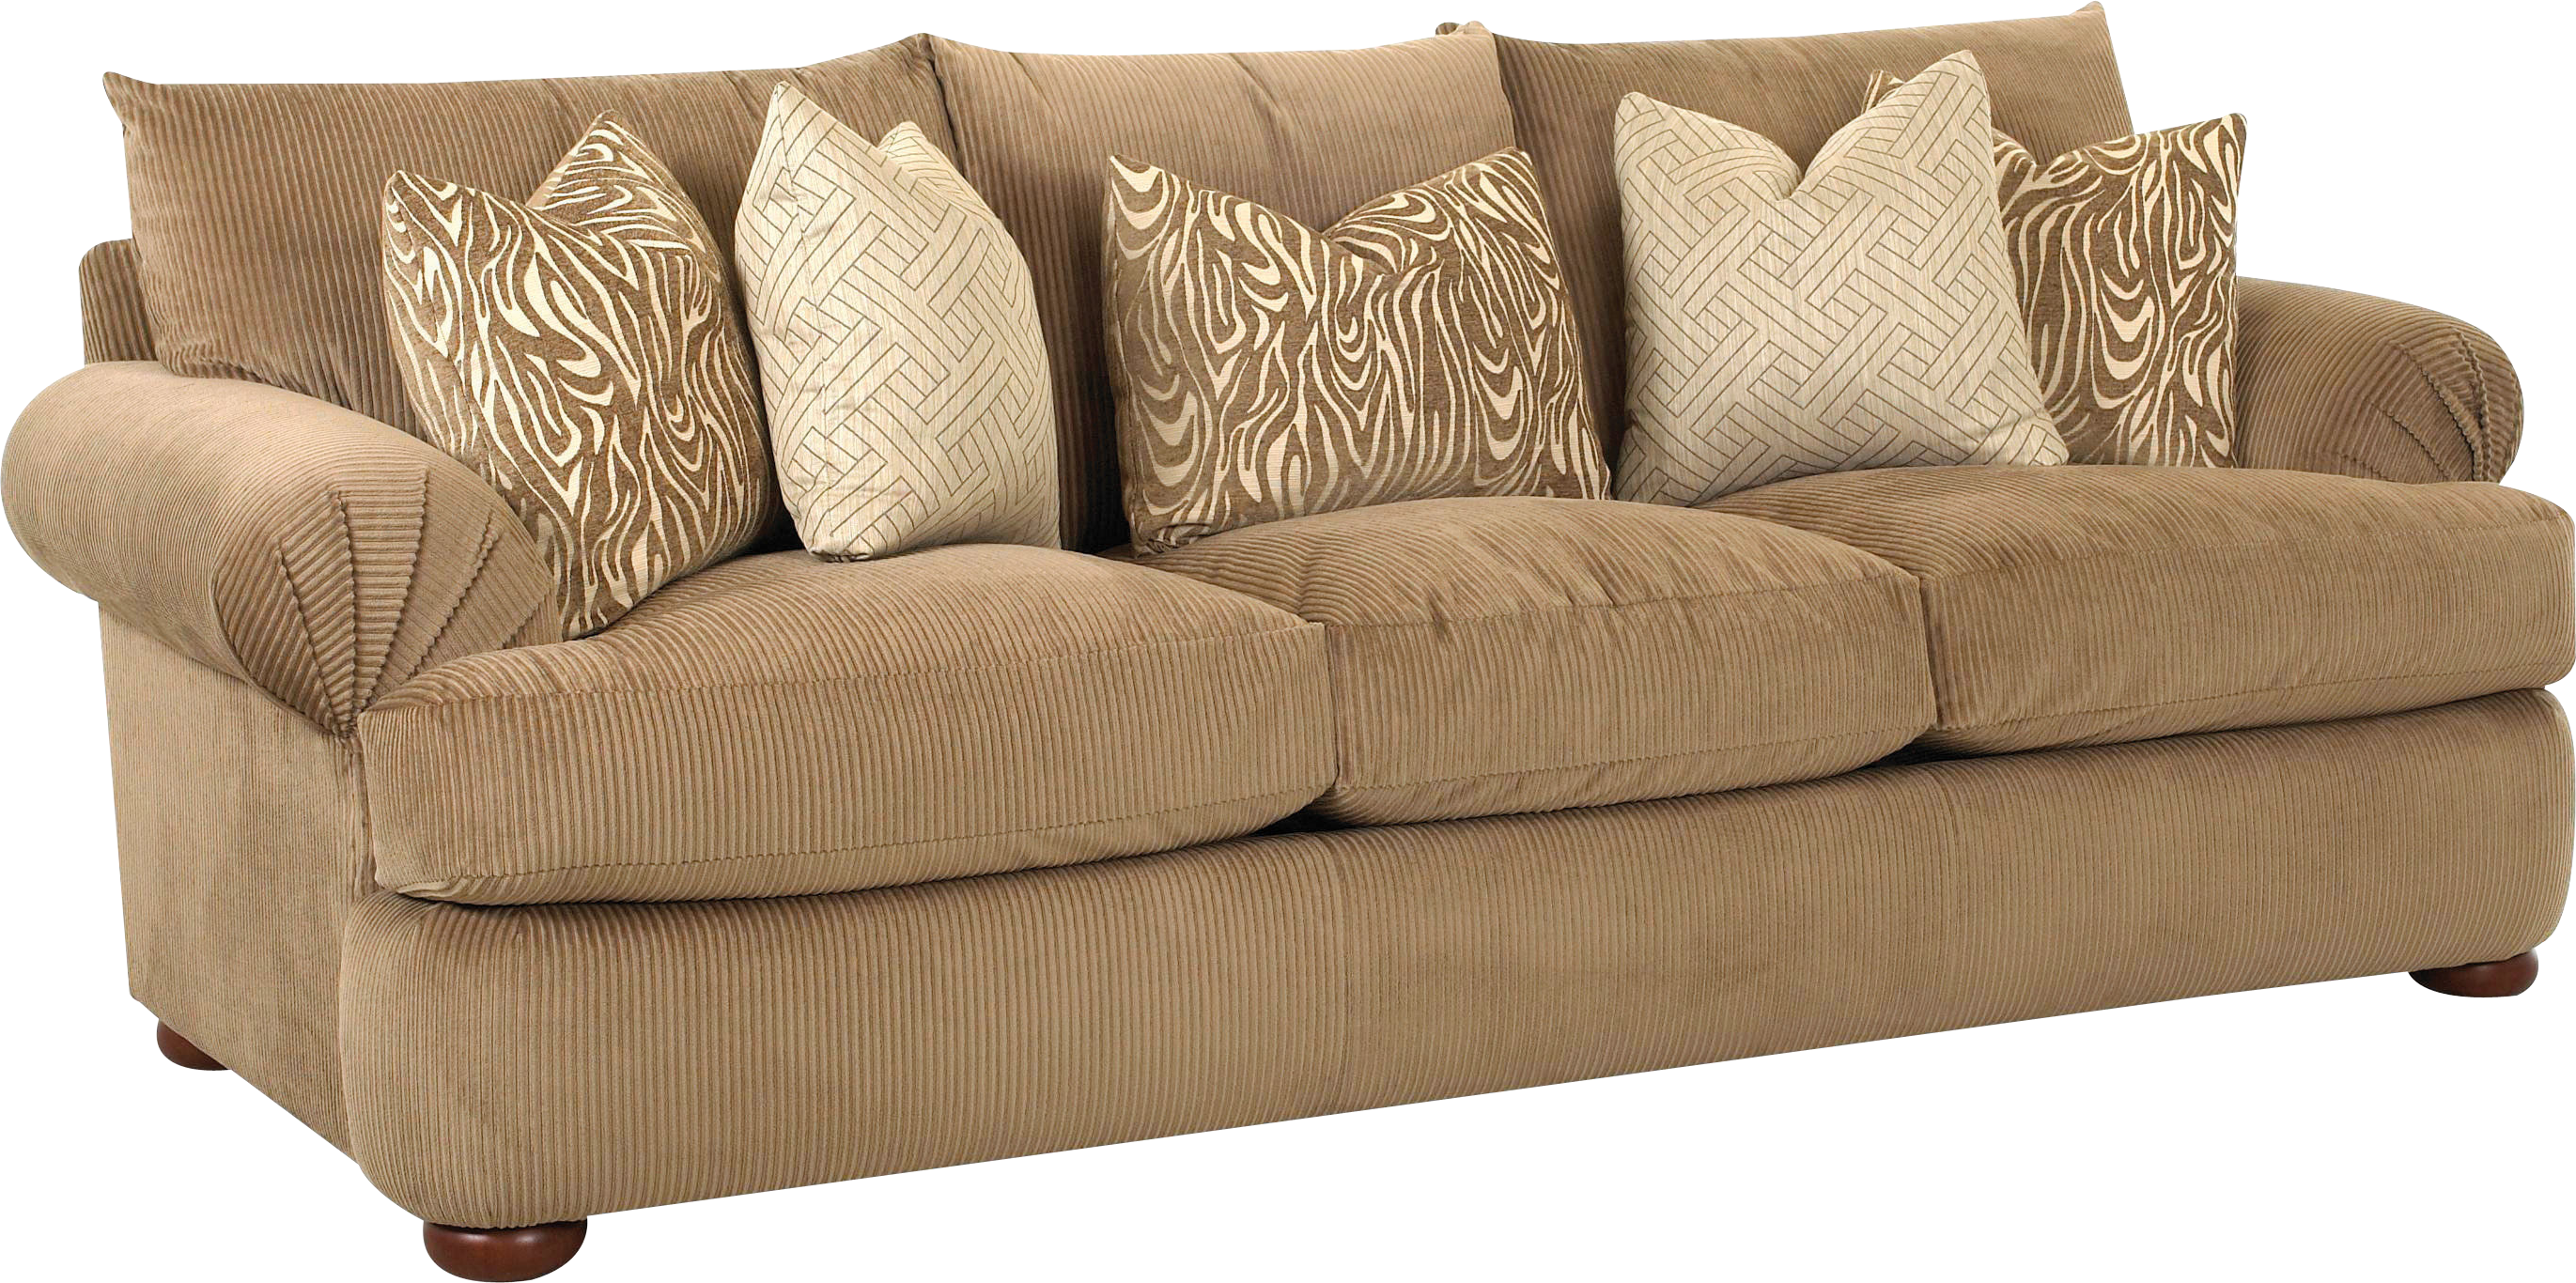 Couch png png. Sofa image